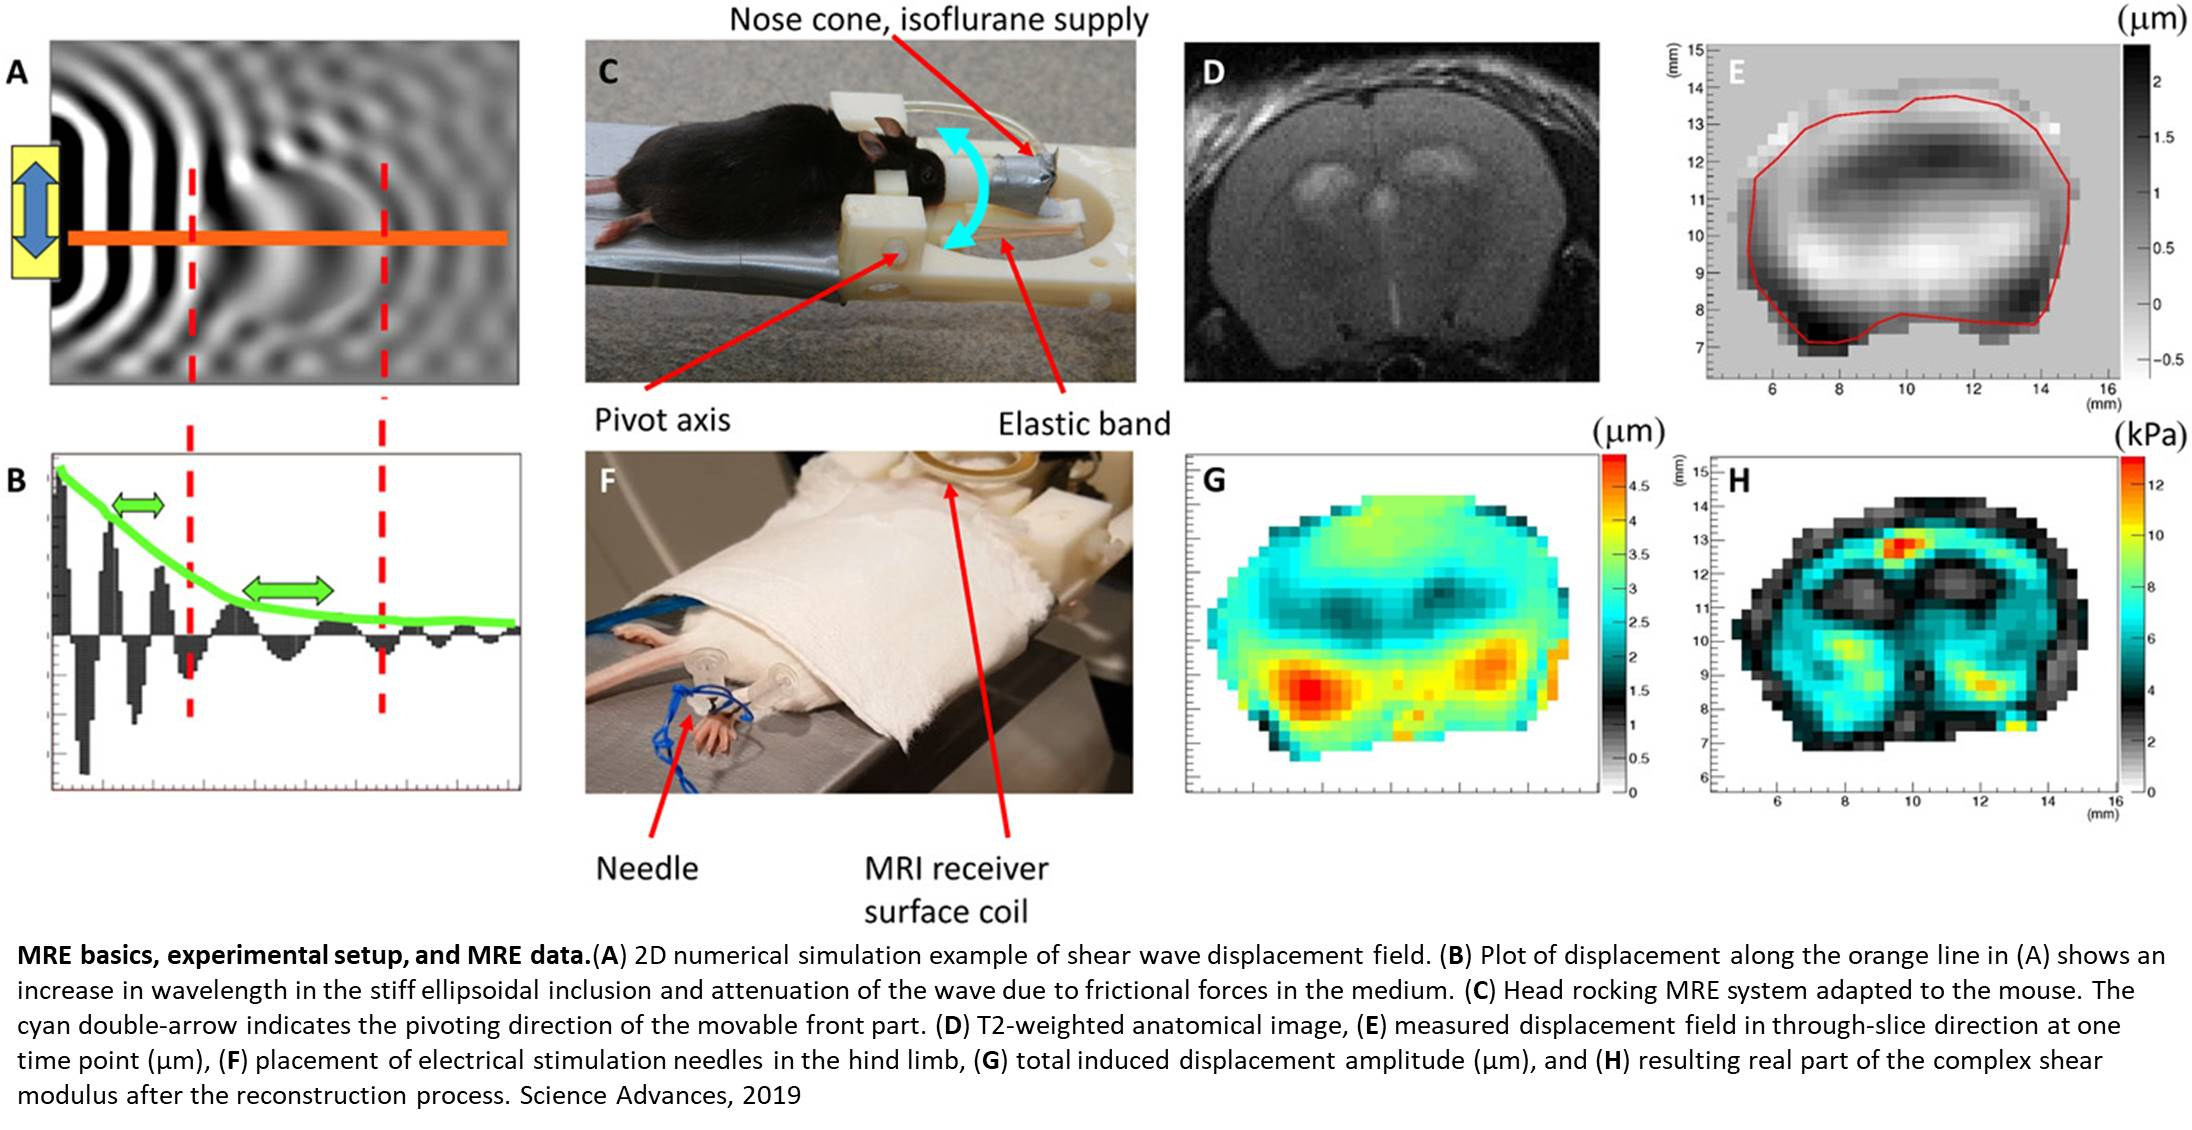 Magnetic resonance elastography (MRE) to measure the brain activity in milliseconds